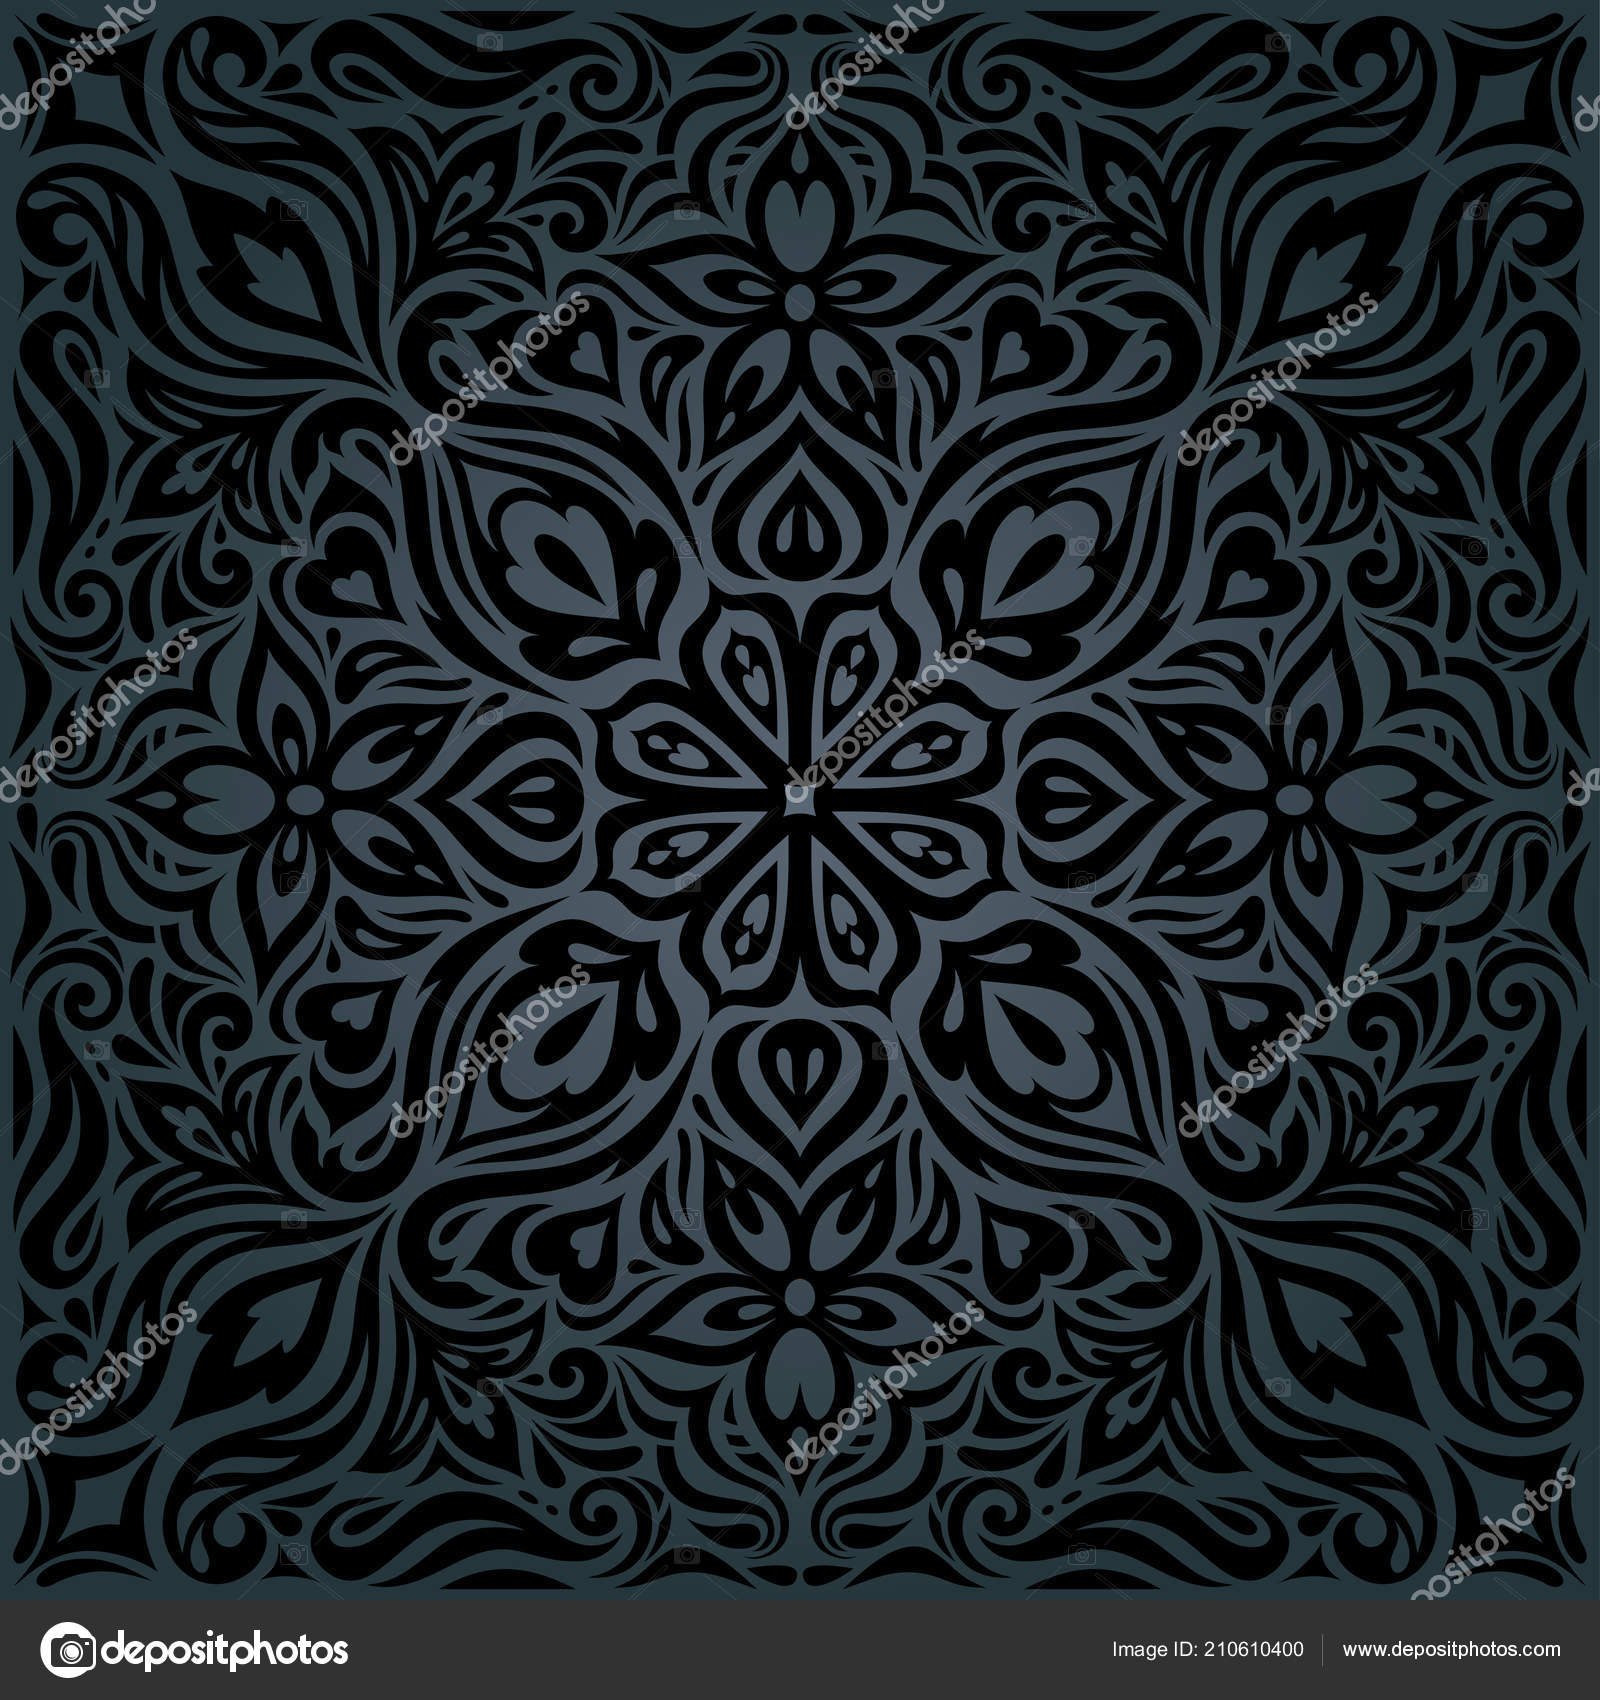 Black Ornate Flowers Floral Decorative Vintage Background Trendy Fashion Wallpaper Stock Vector